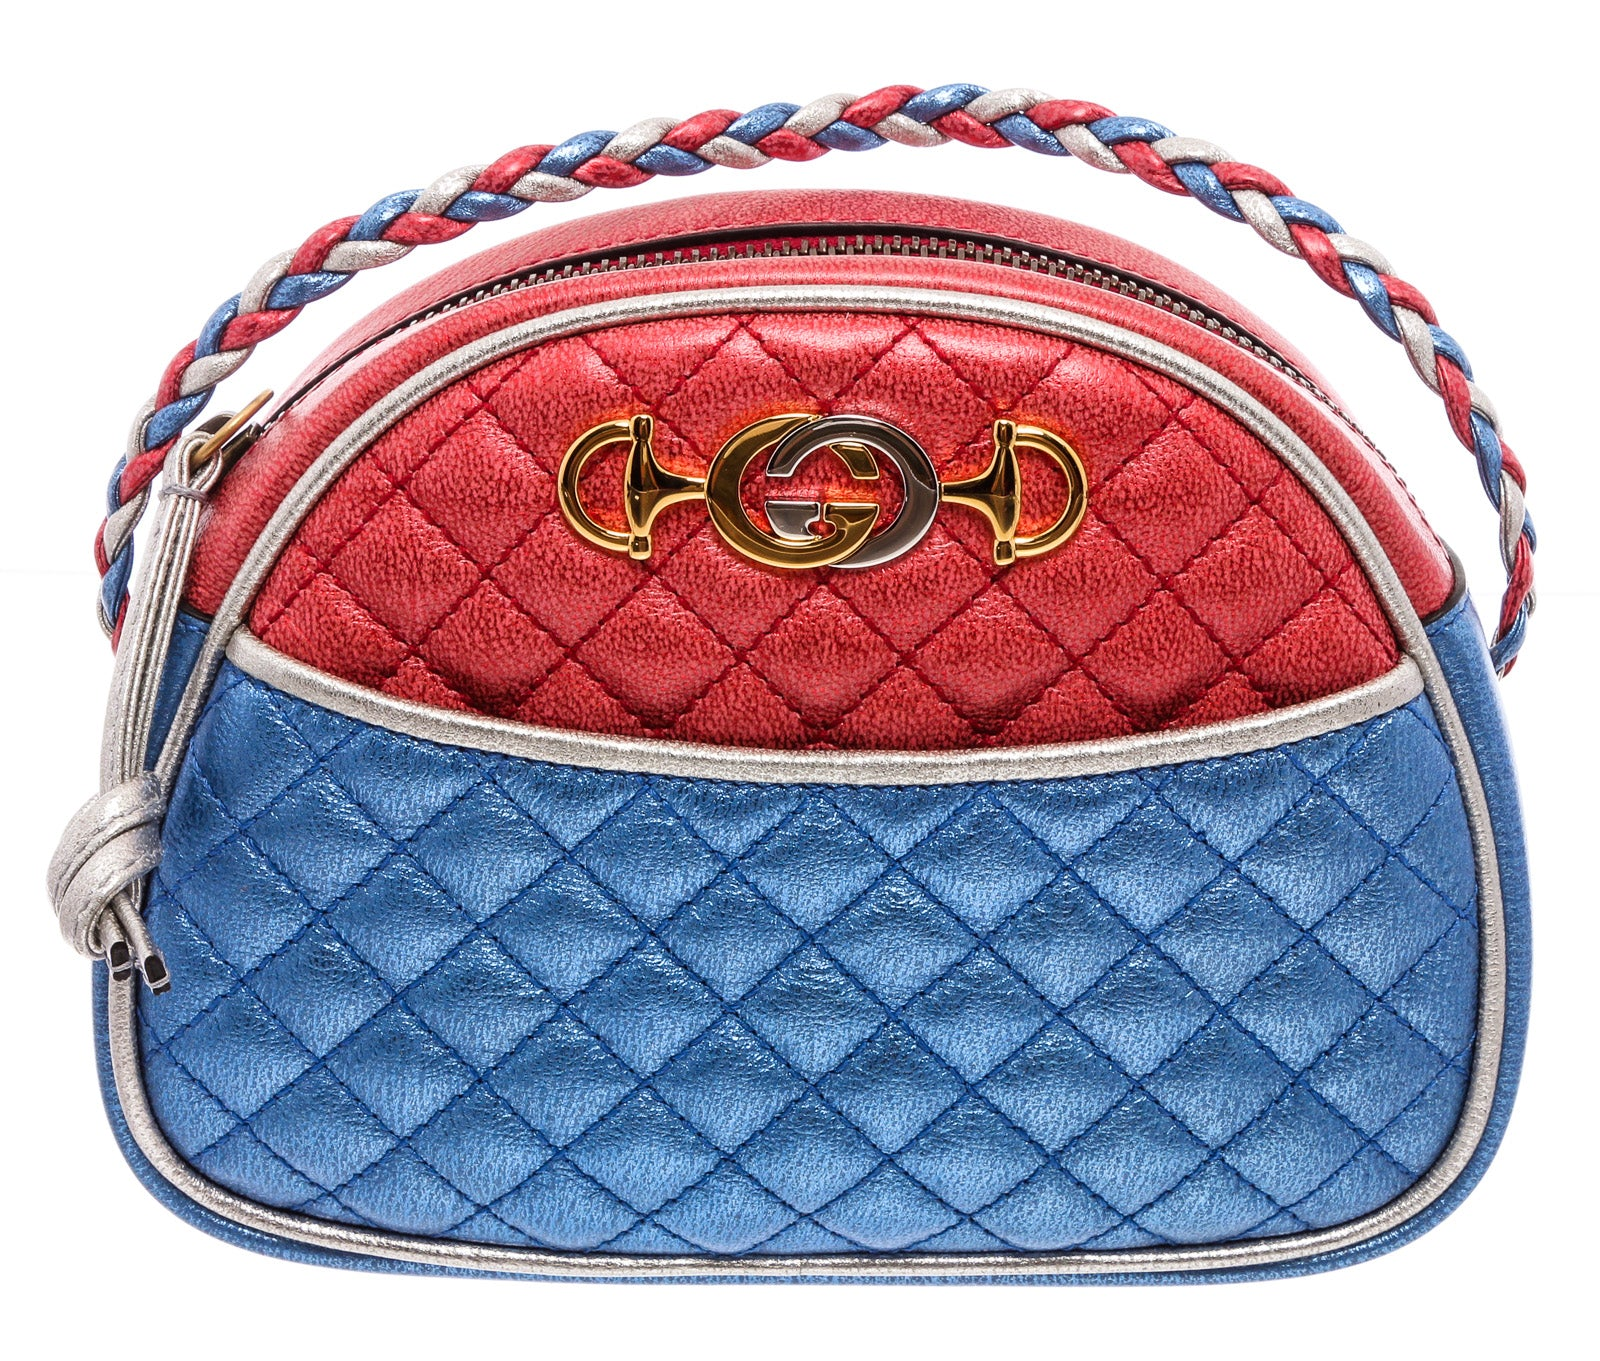 Gucci Red Blue Metallic Quilted Leather Mini Dome Trapuntata Crossbody Bag